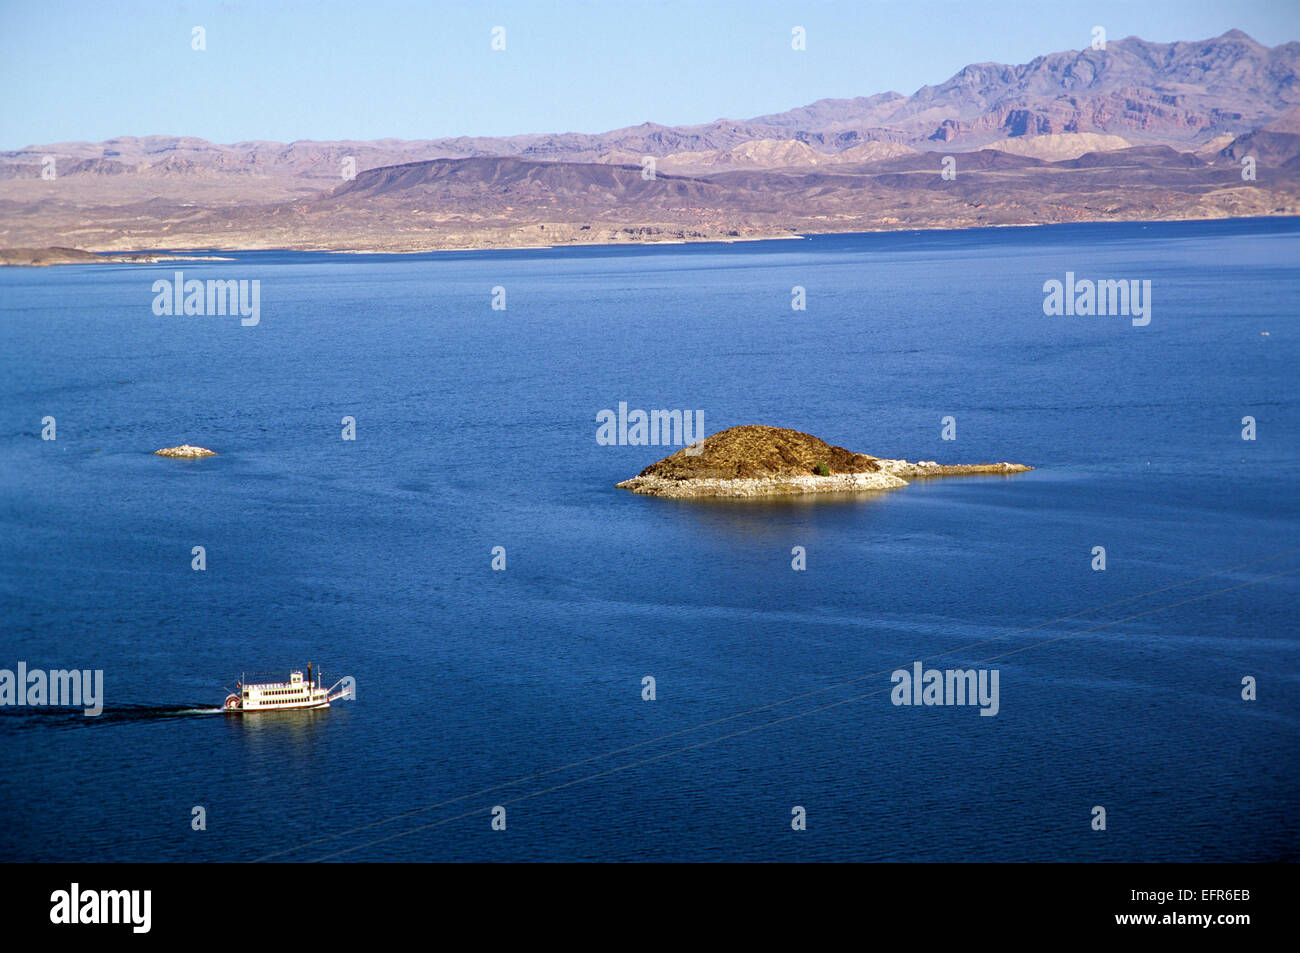 A tour boat plies Lake Mead, Nevada, USA. - Stock Image